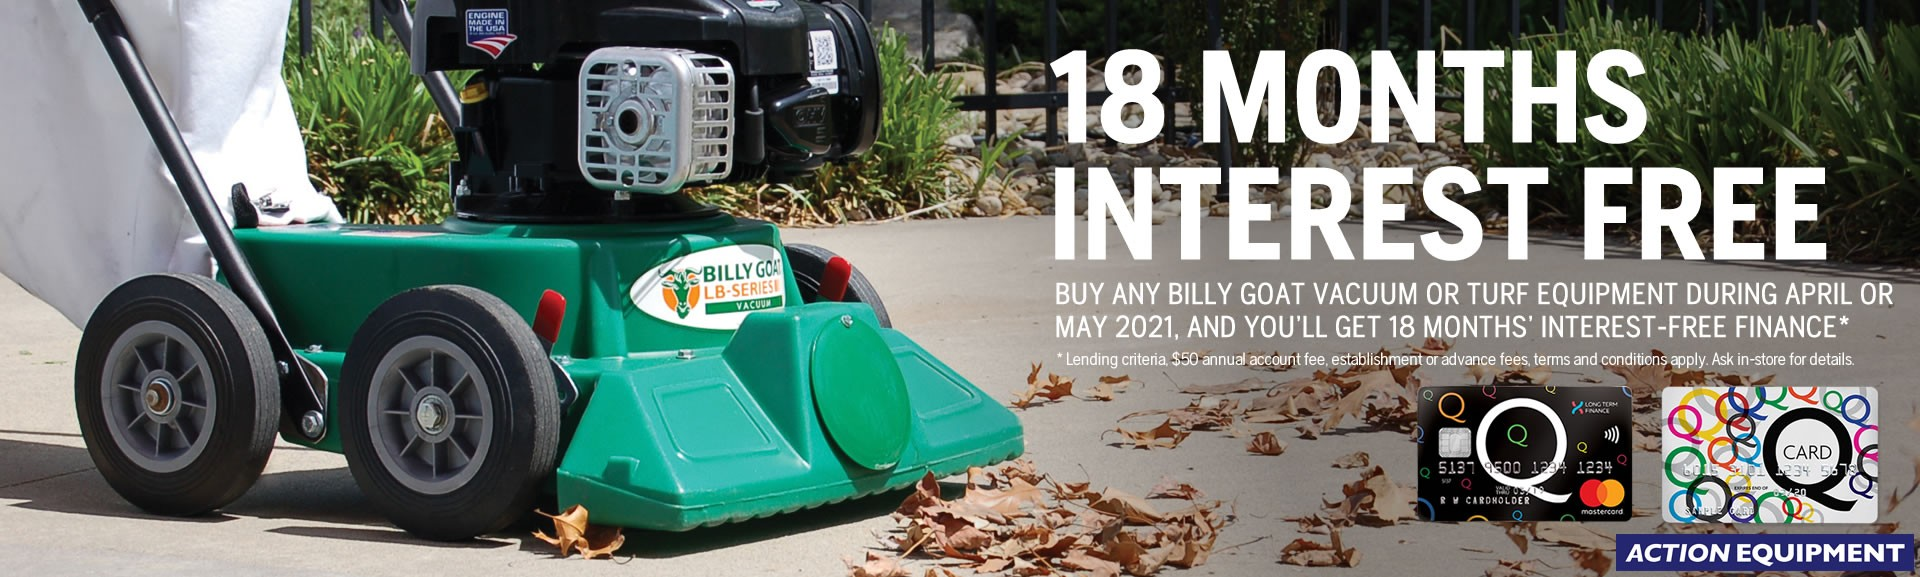 Billy Goat Q2 2021 finance offer